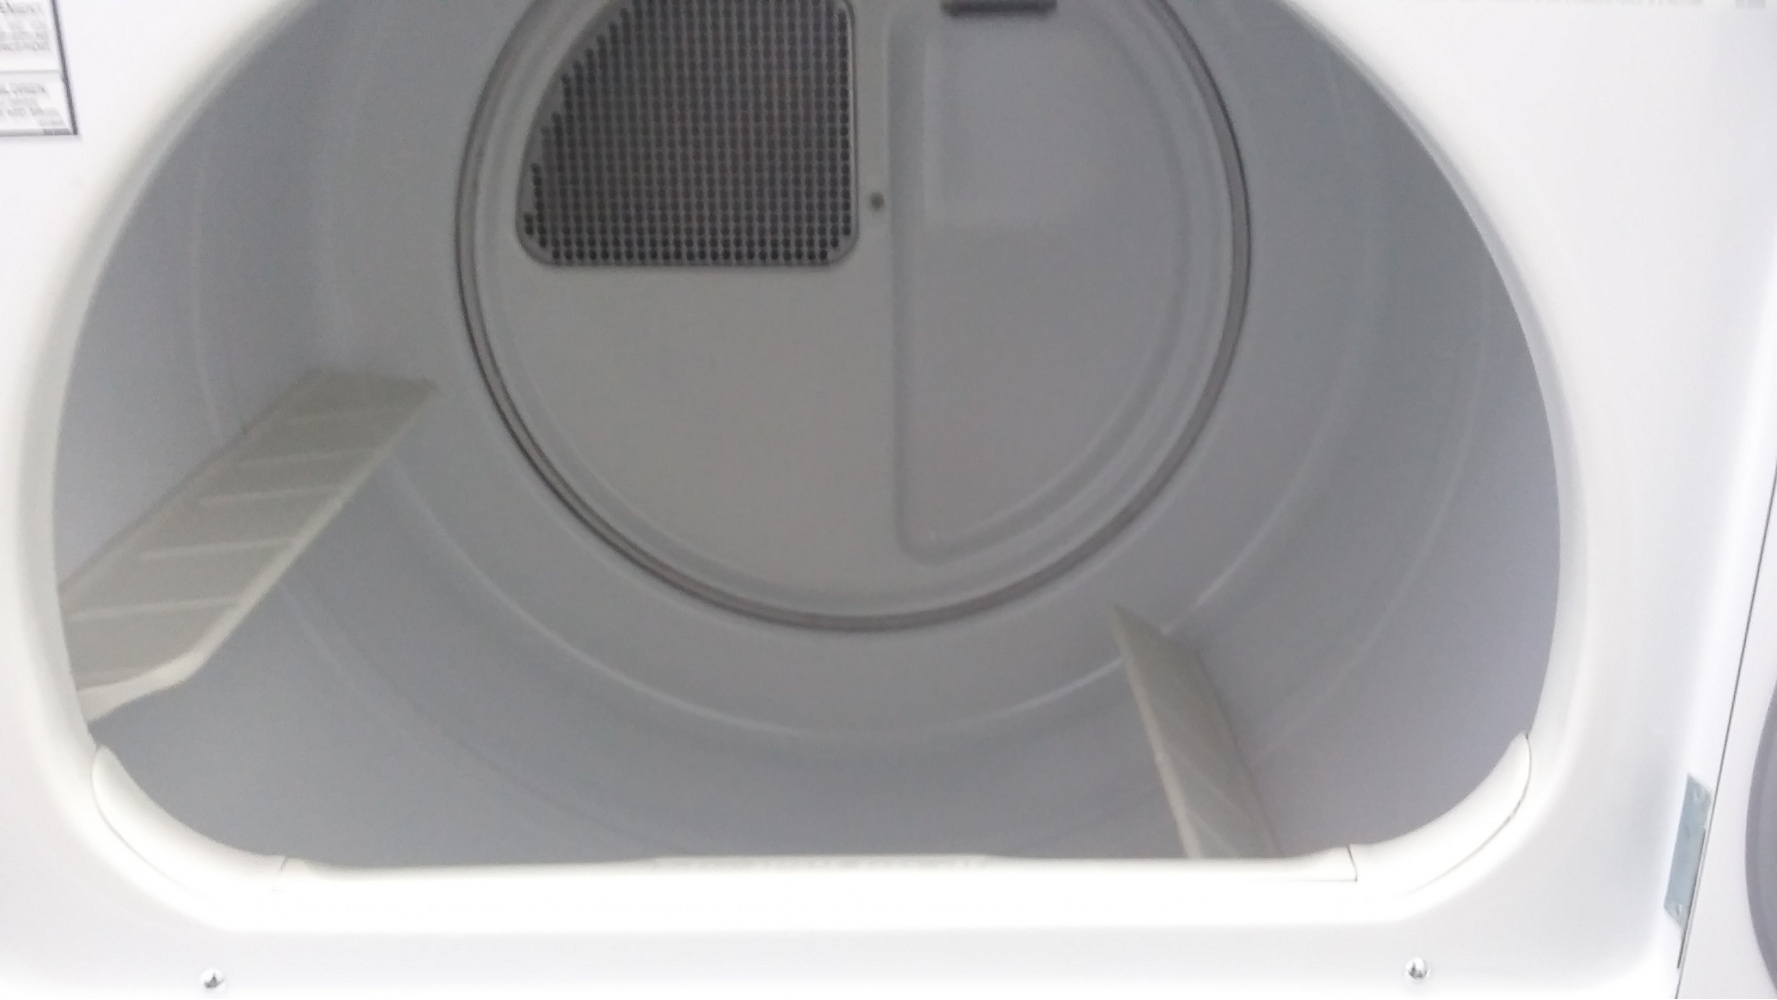 Maytag Performa White Top Load Washer W Gas Dryer Set Out Of Stock Kimo S